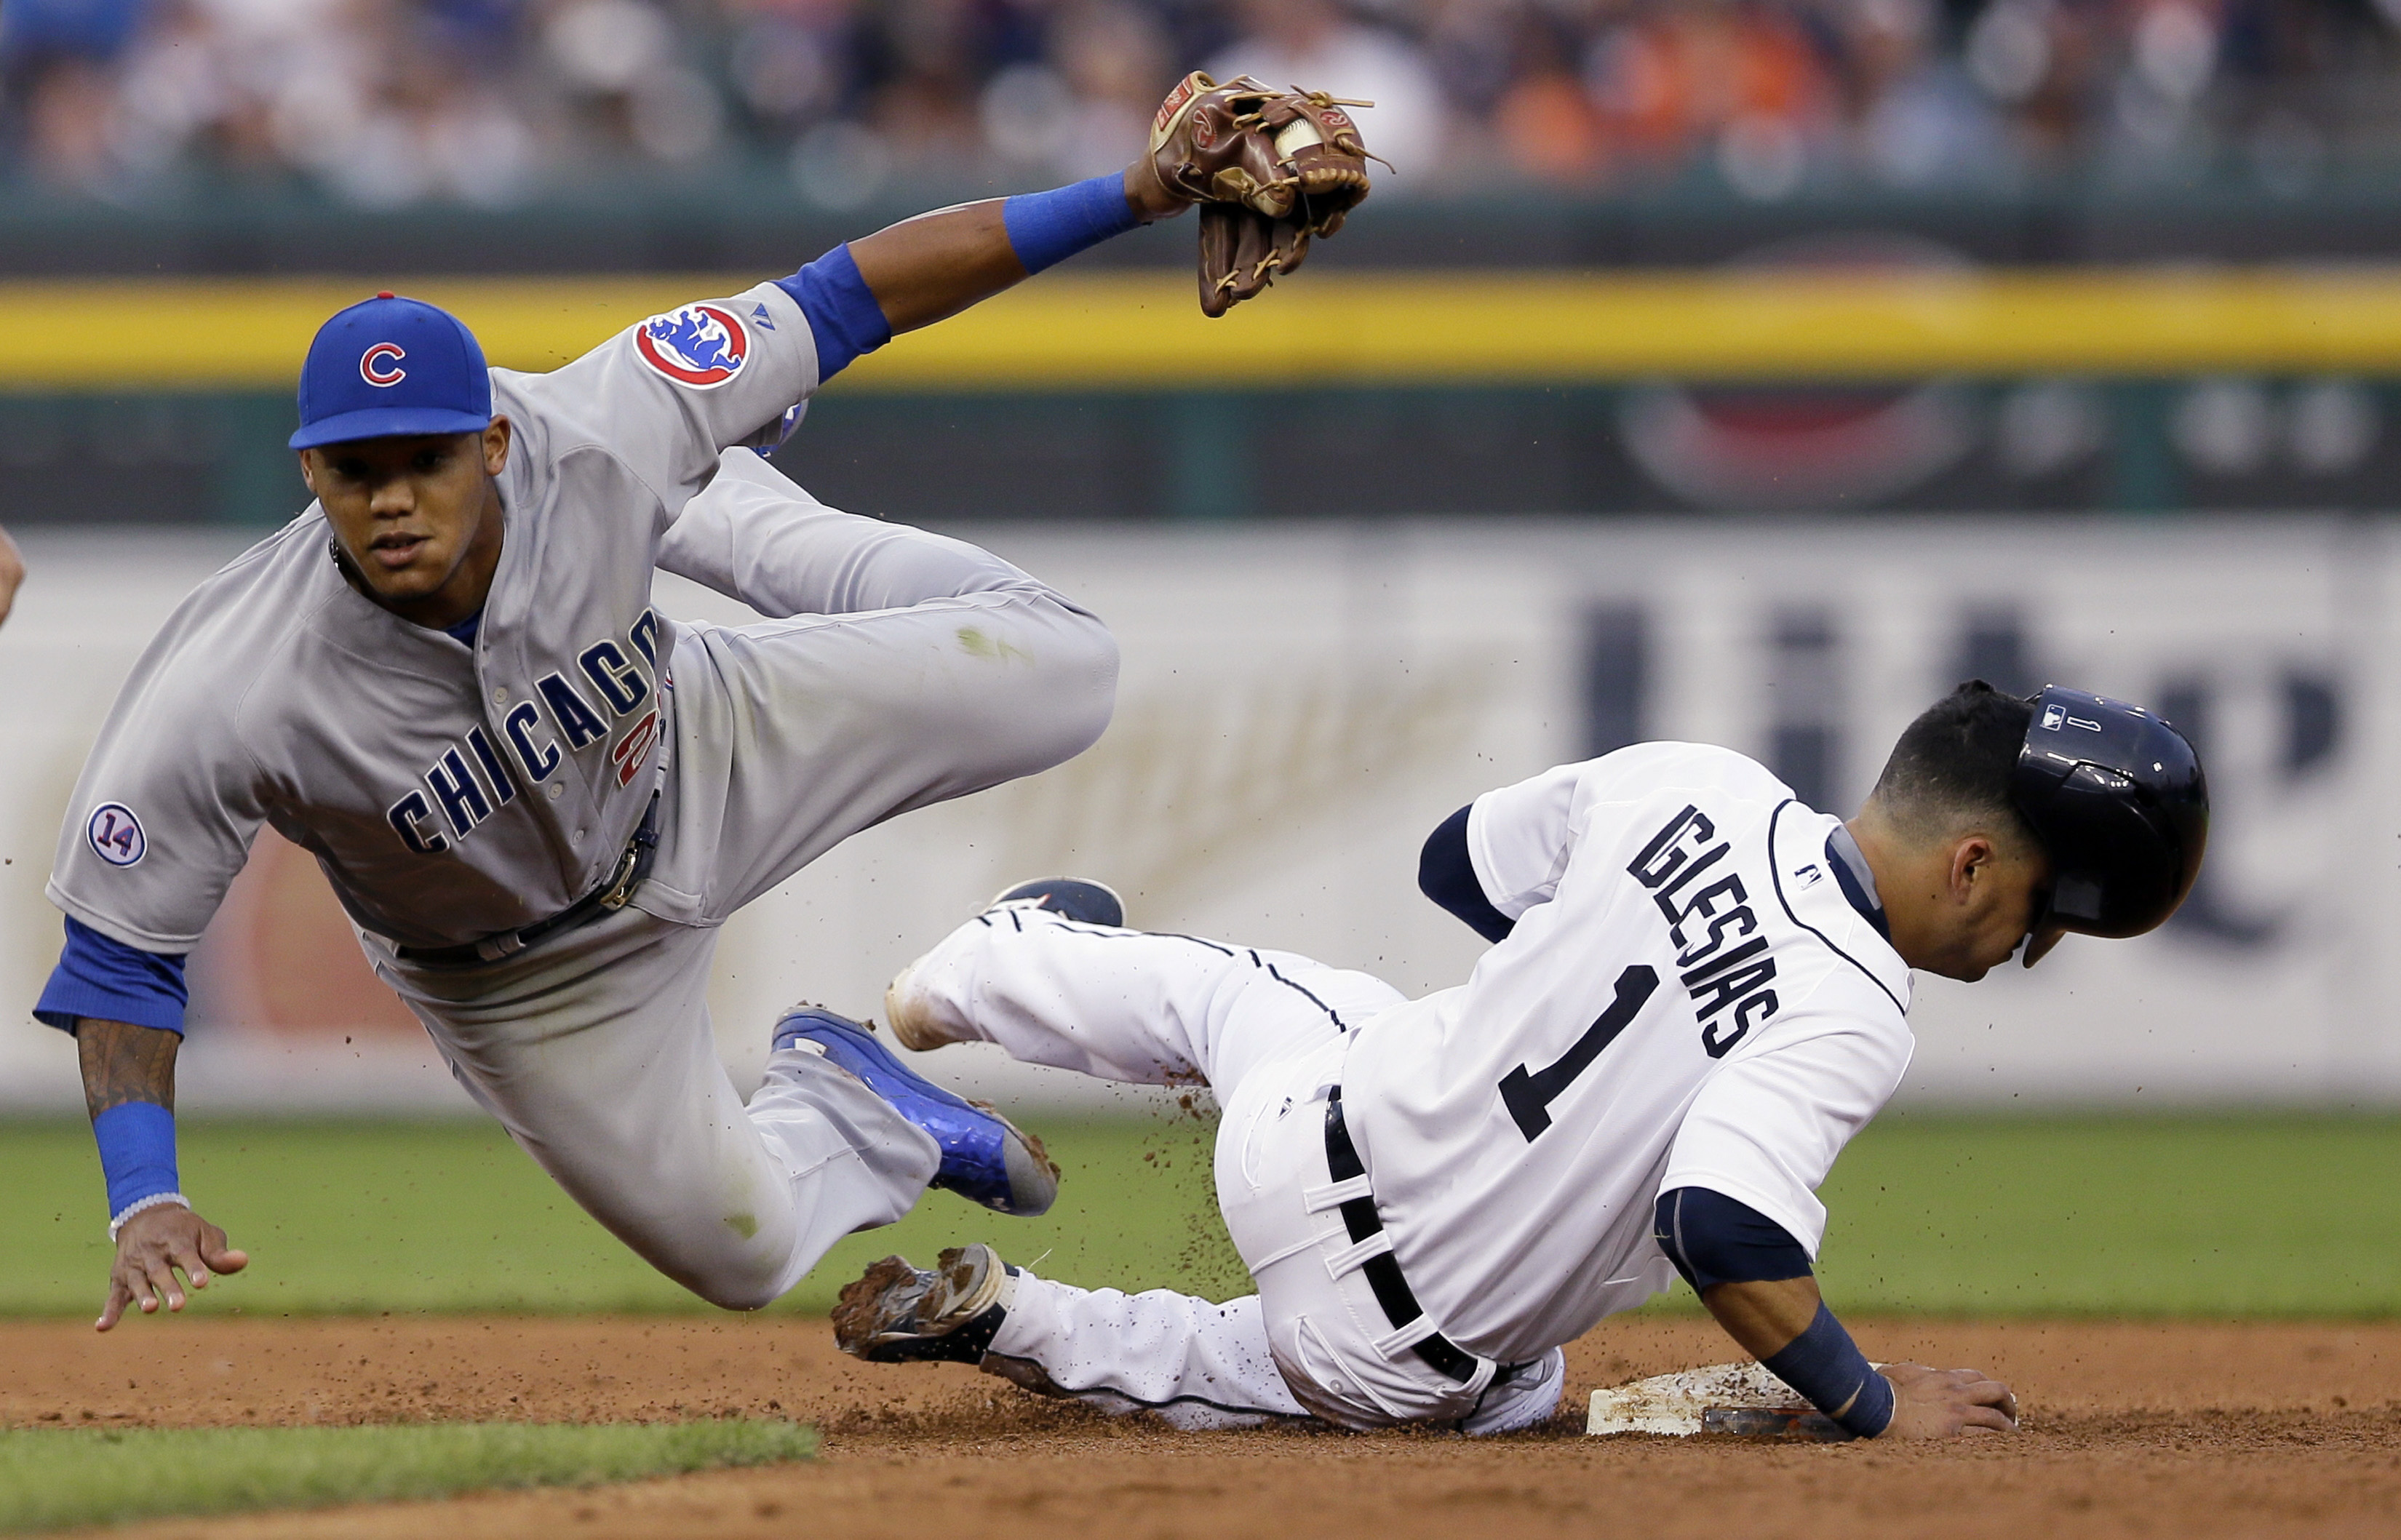 Chicago Cubs second baseman Addison Russell tumbles next to Detroit Tigers' Jose Iglesias after tagging Iglesias out on an attempted steal during the fifth inning of a baseball game, Tuesday, June 9, 2015, in Detroit. (AP Photo/Carlos Osorio)